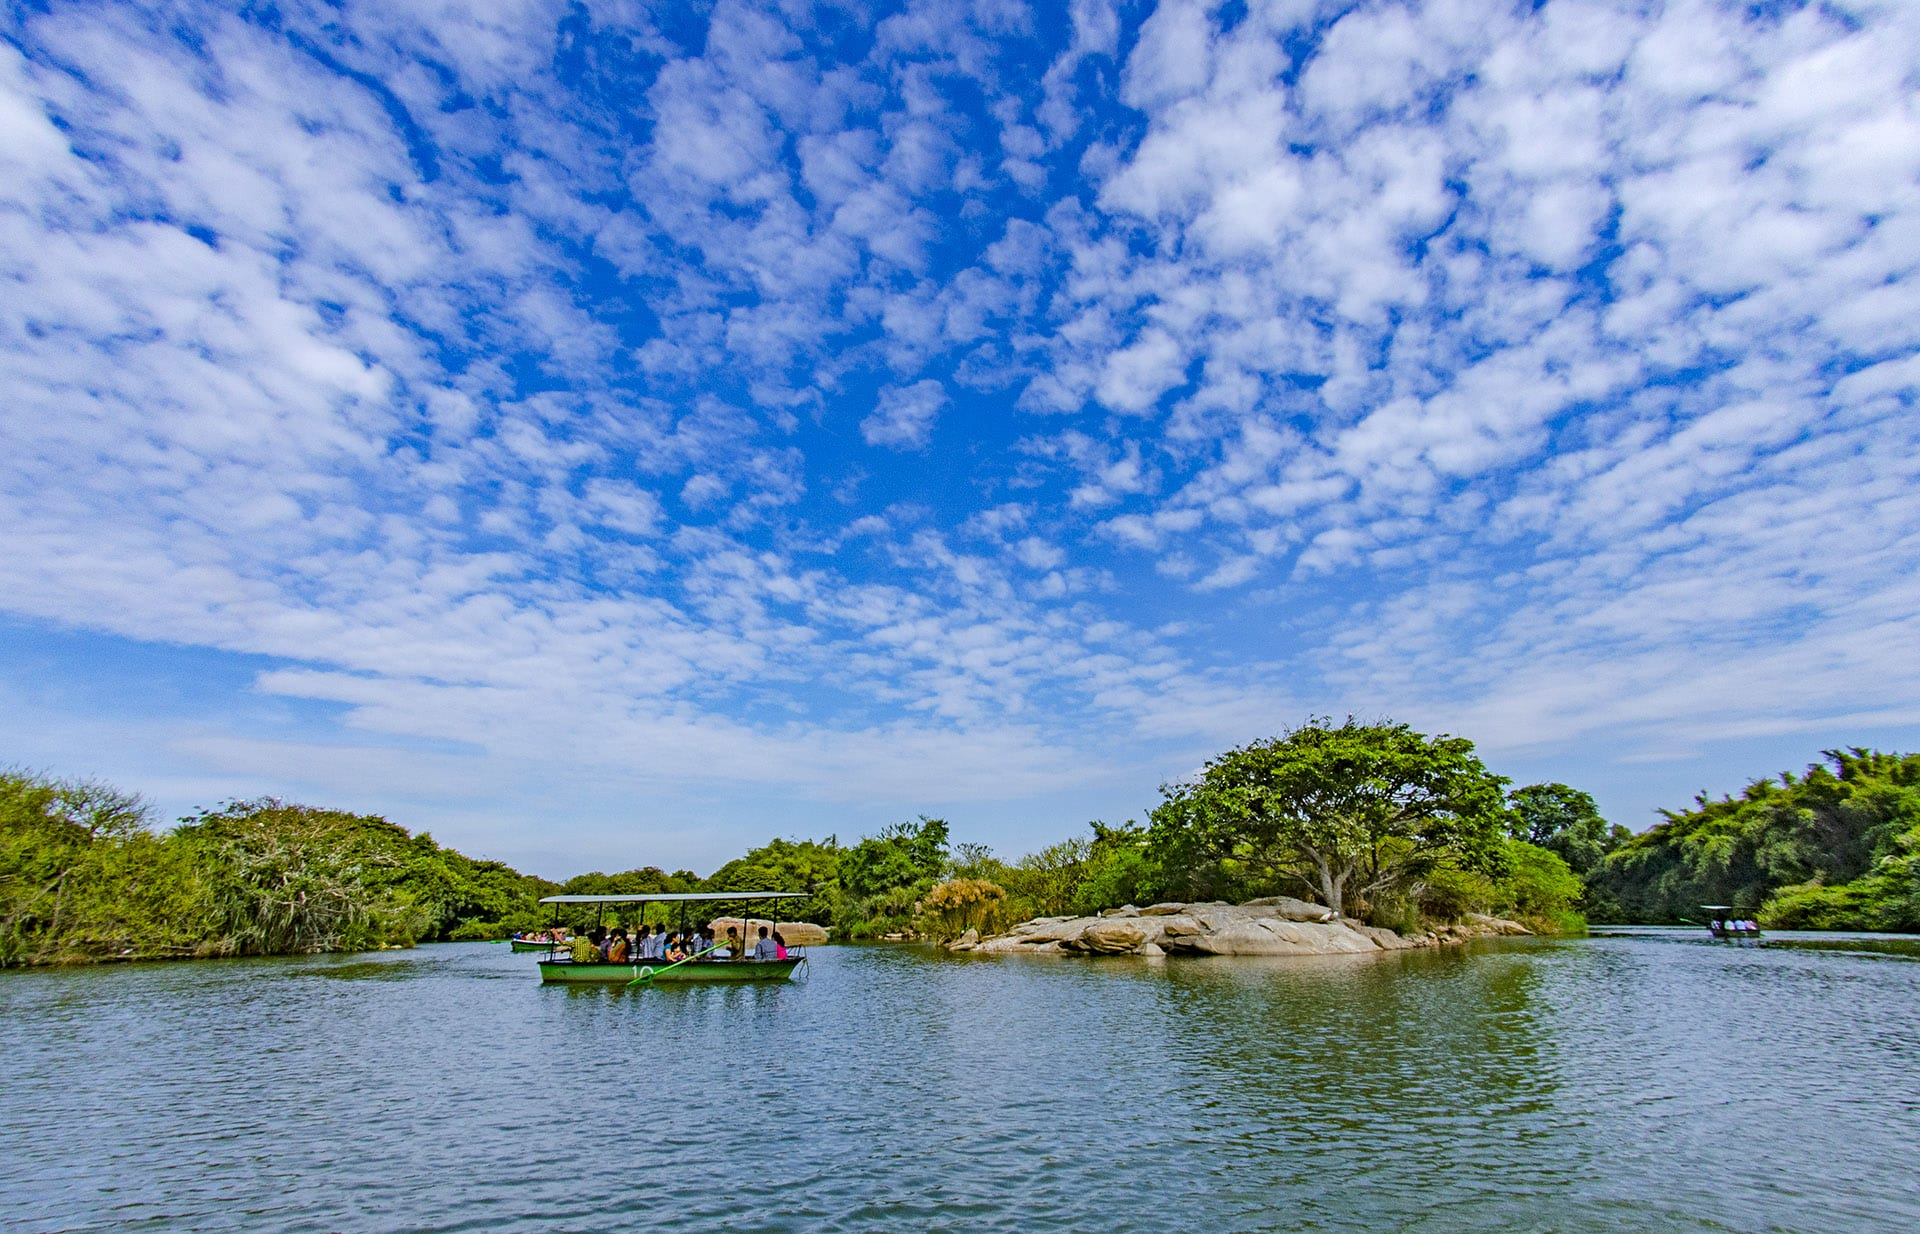 Visitors explore Ranganathittu Bird Sanctuary on a boat safari which takes them along six islets for a close look at the sanctuary's wide variety of birds.